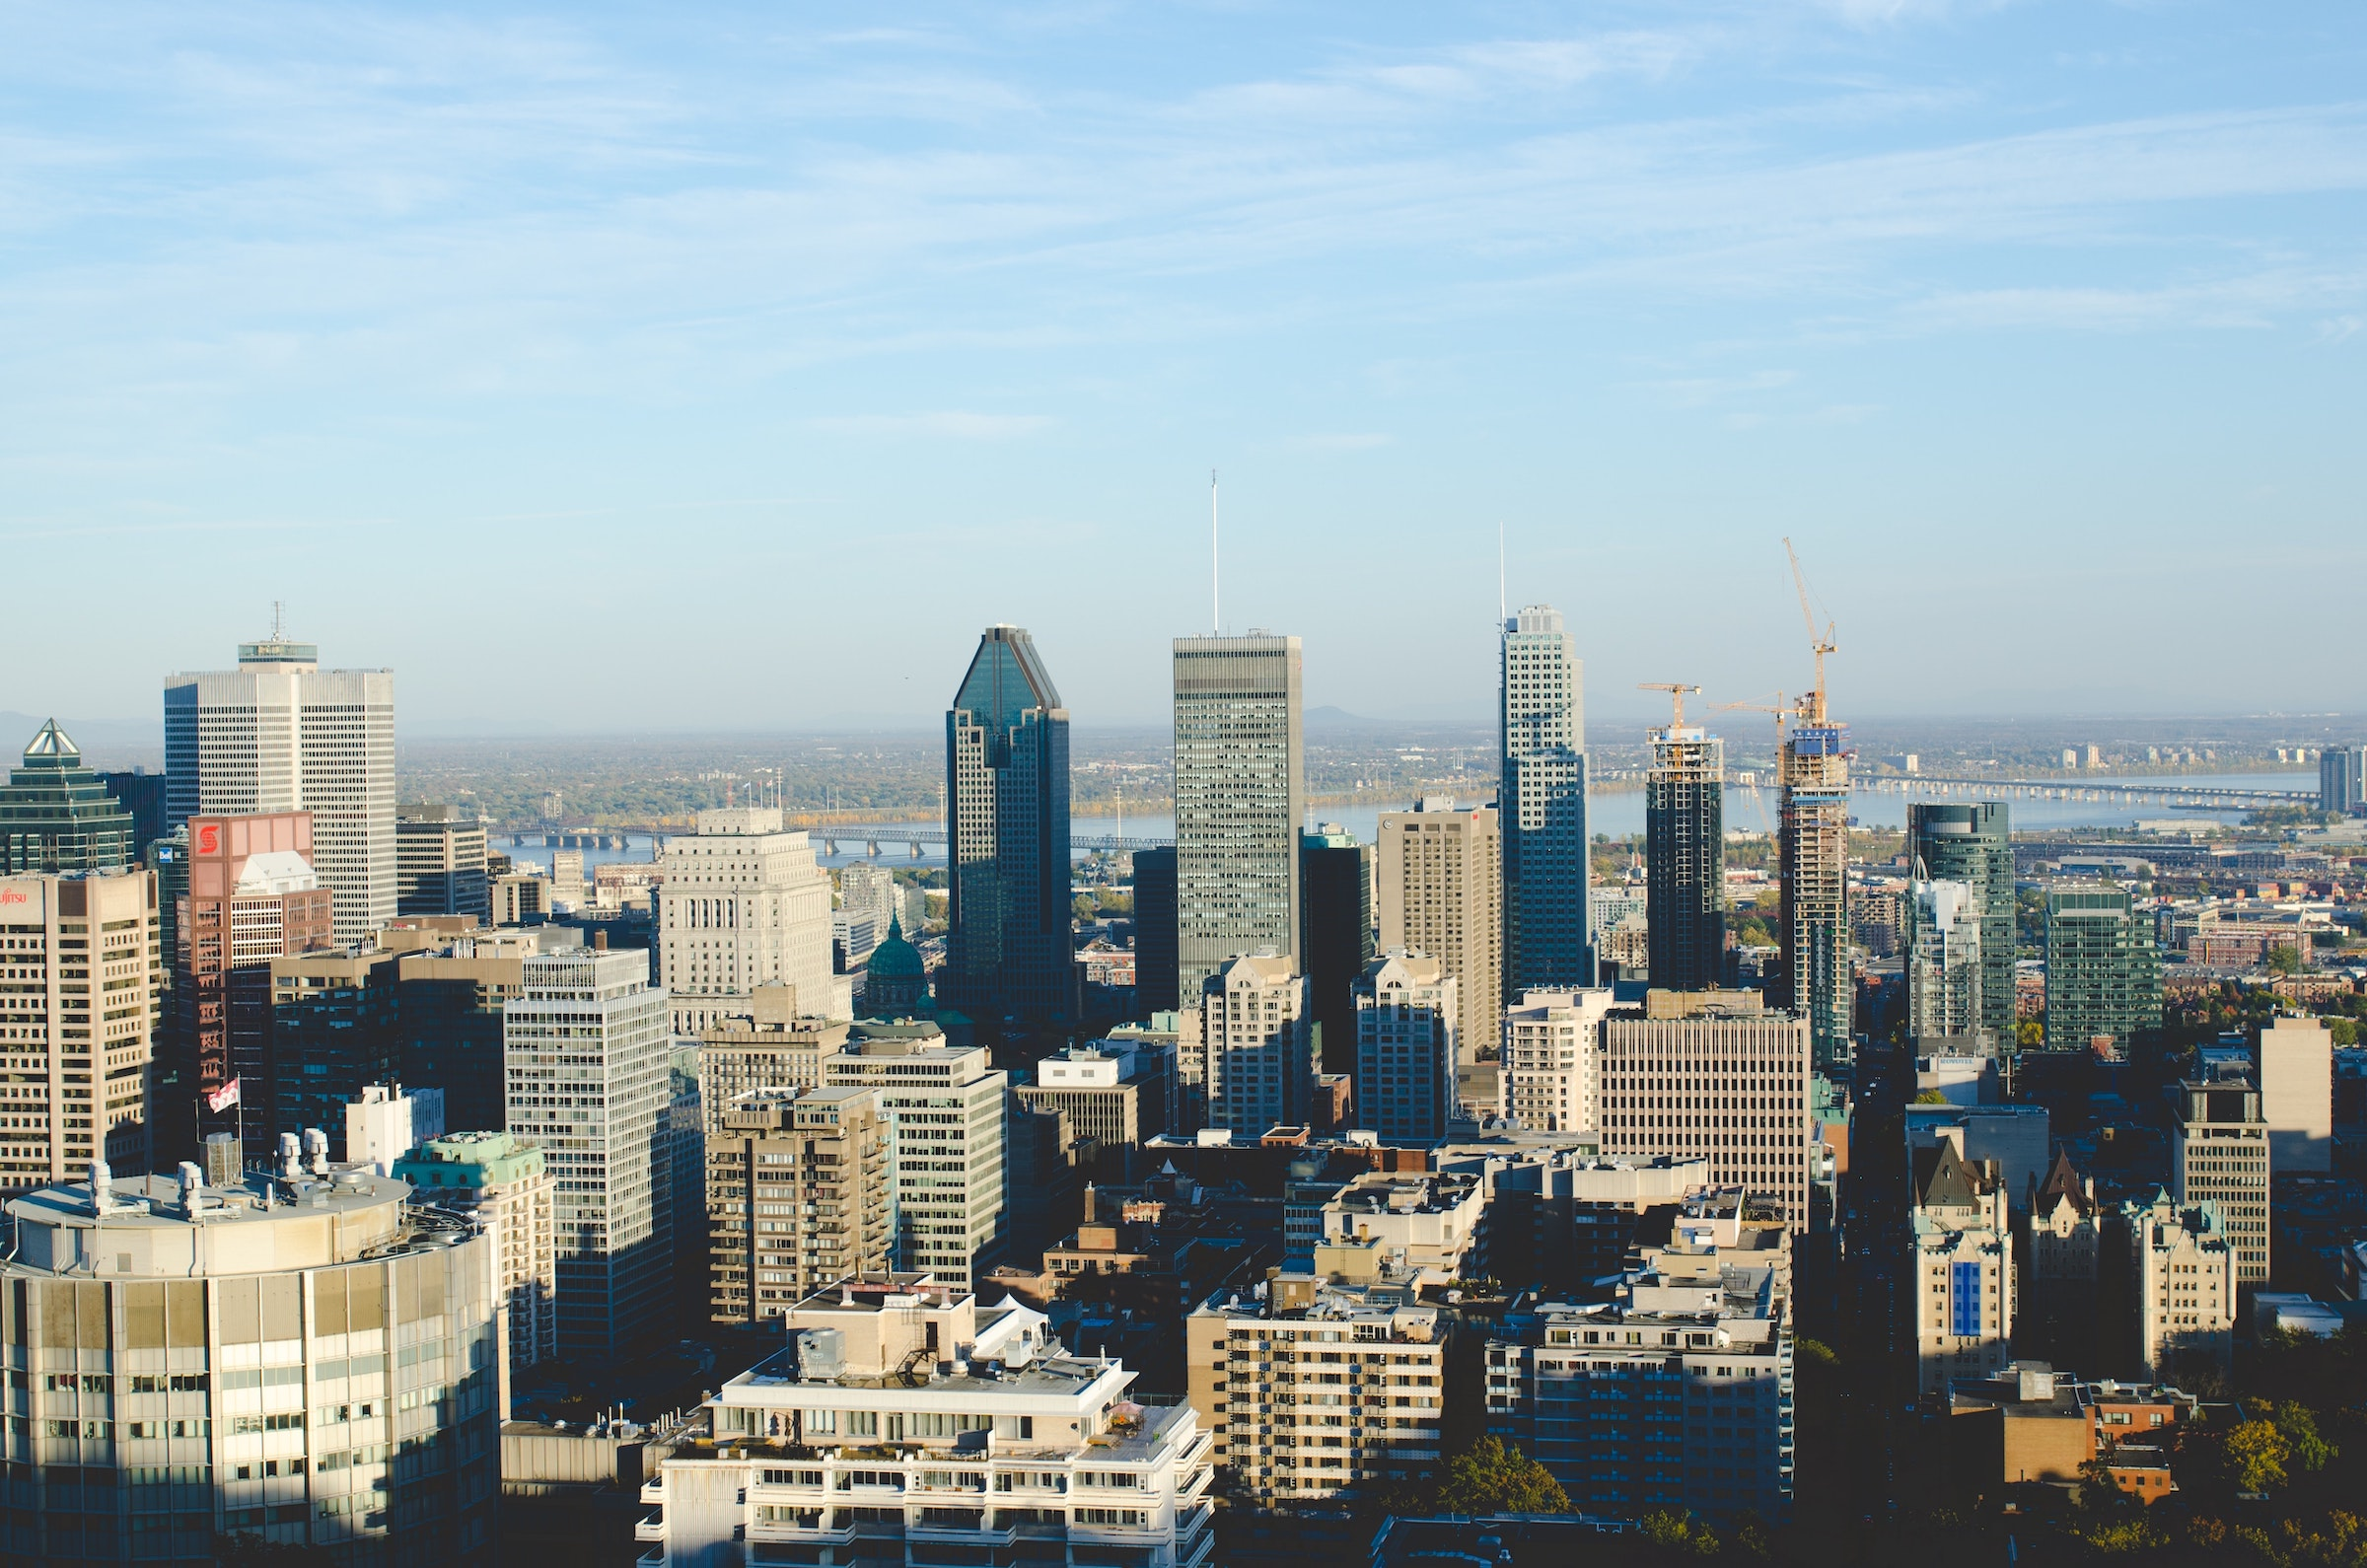 Montreal in daytime